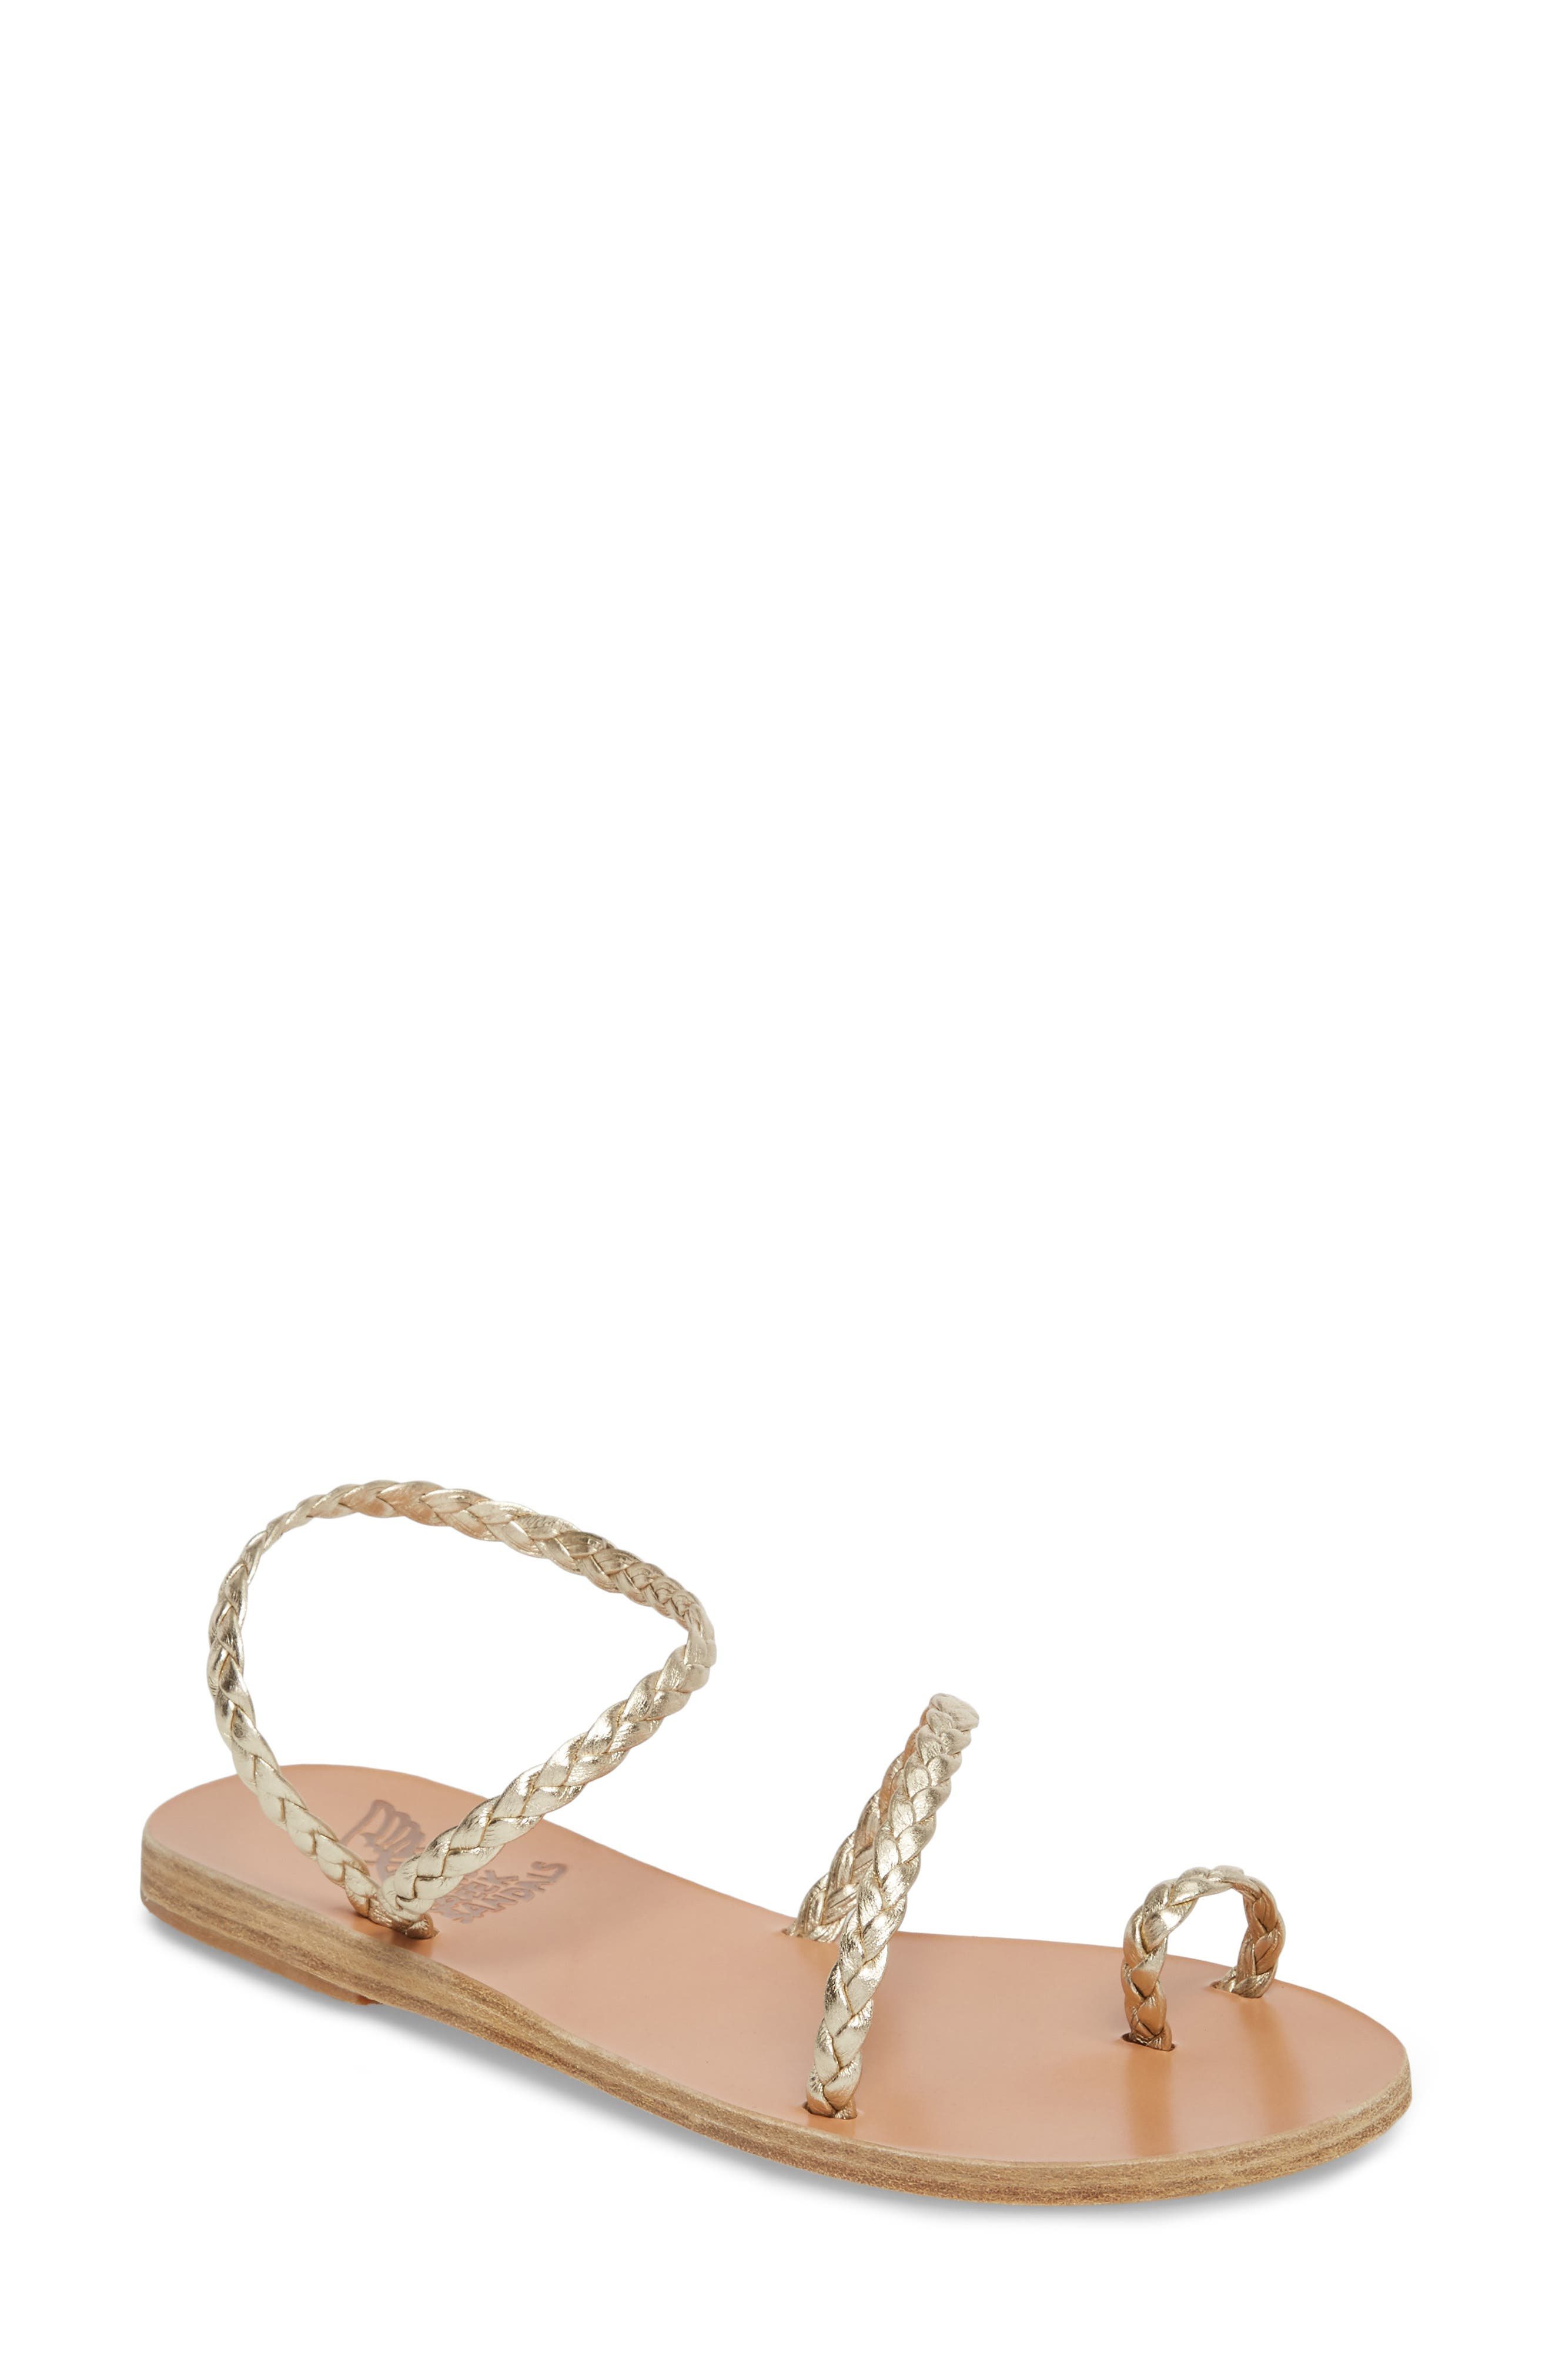 Eleftheria Sandal,                         Main,                         color, Platinum